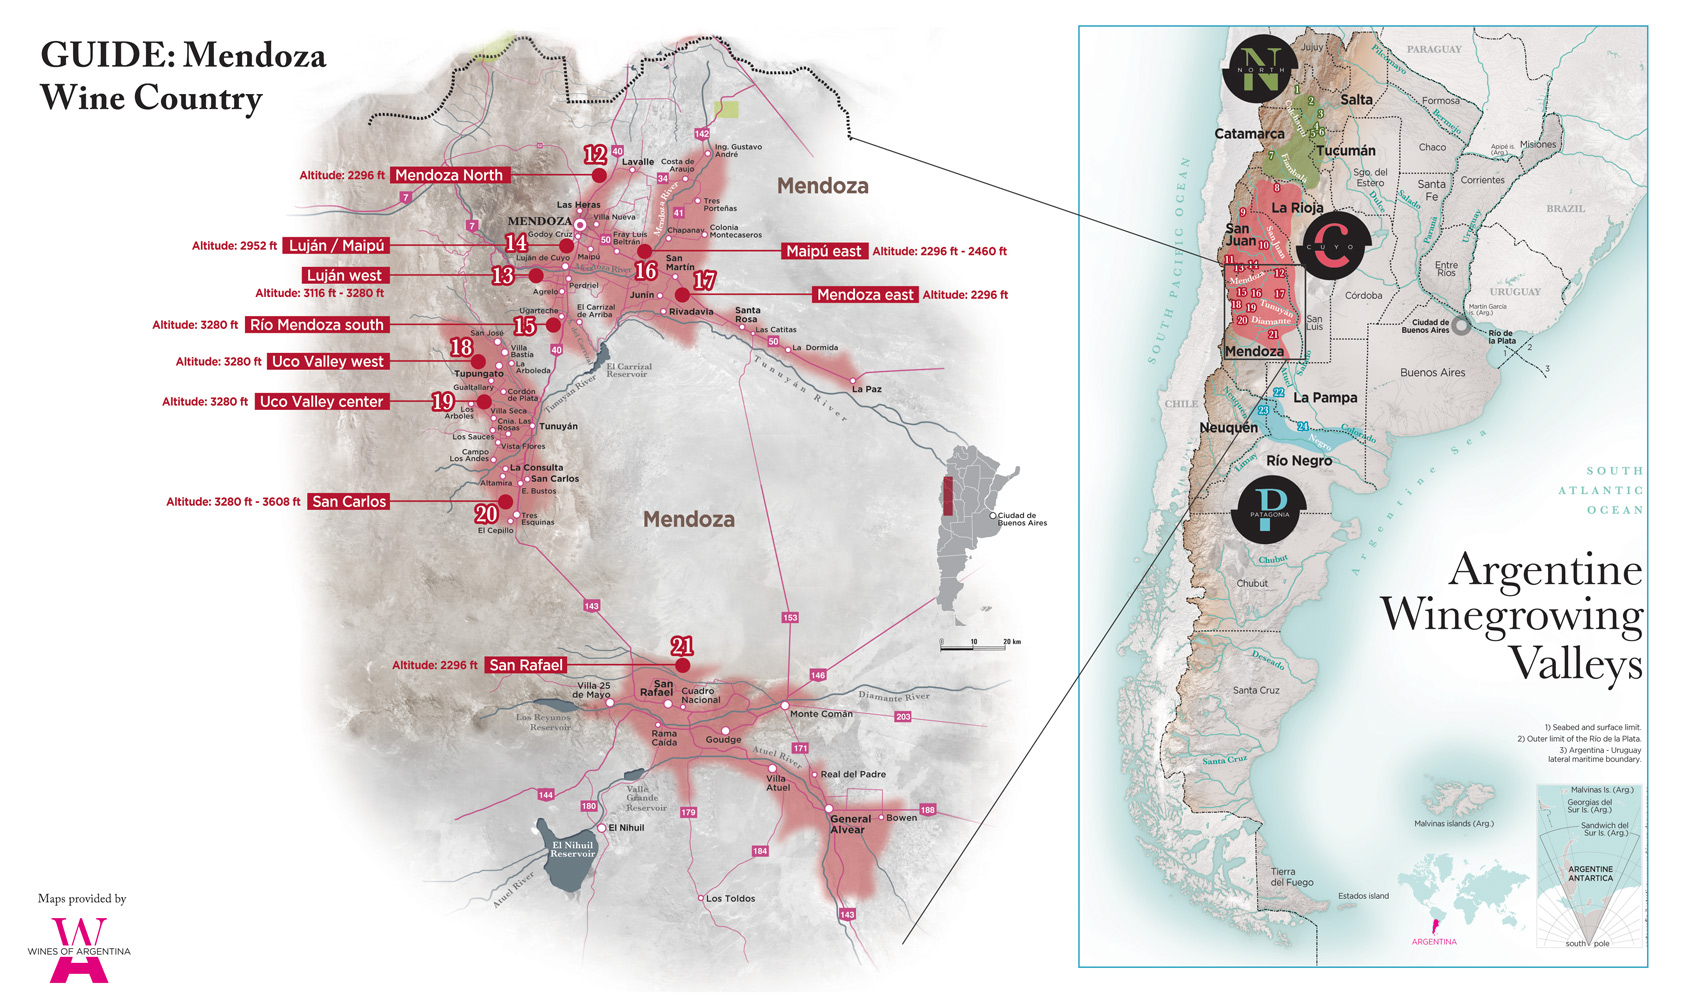 Argentina-Wine-Country-Guide